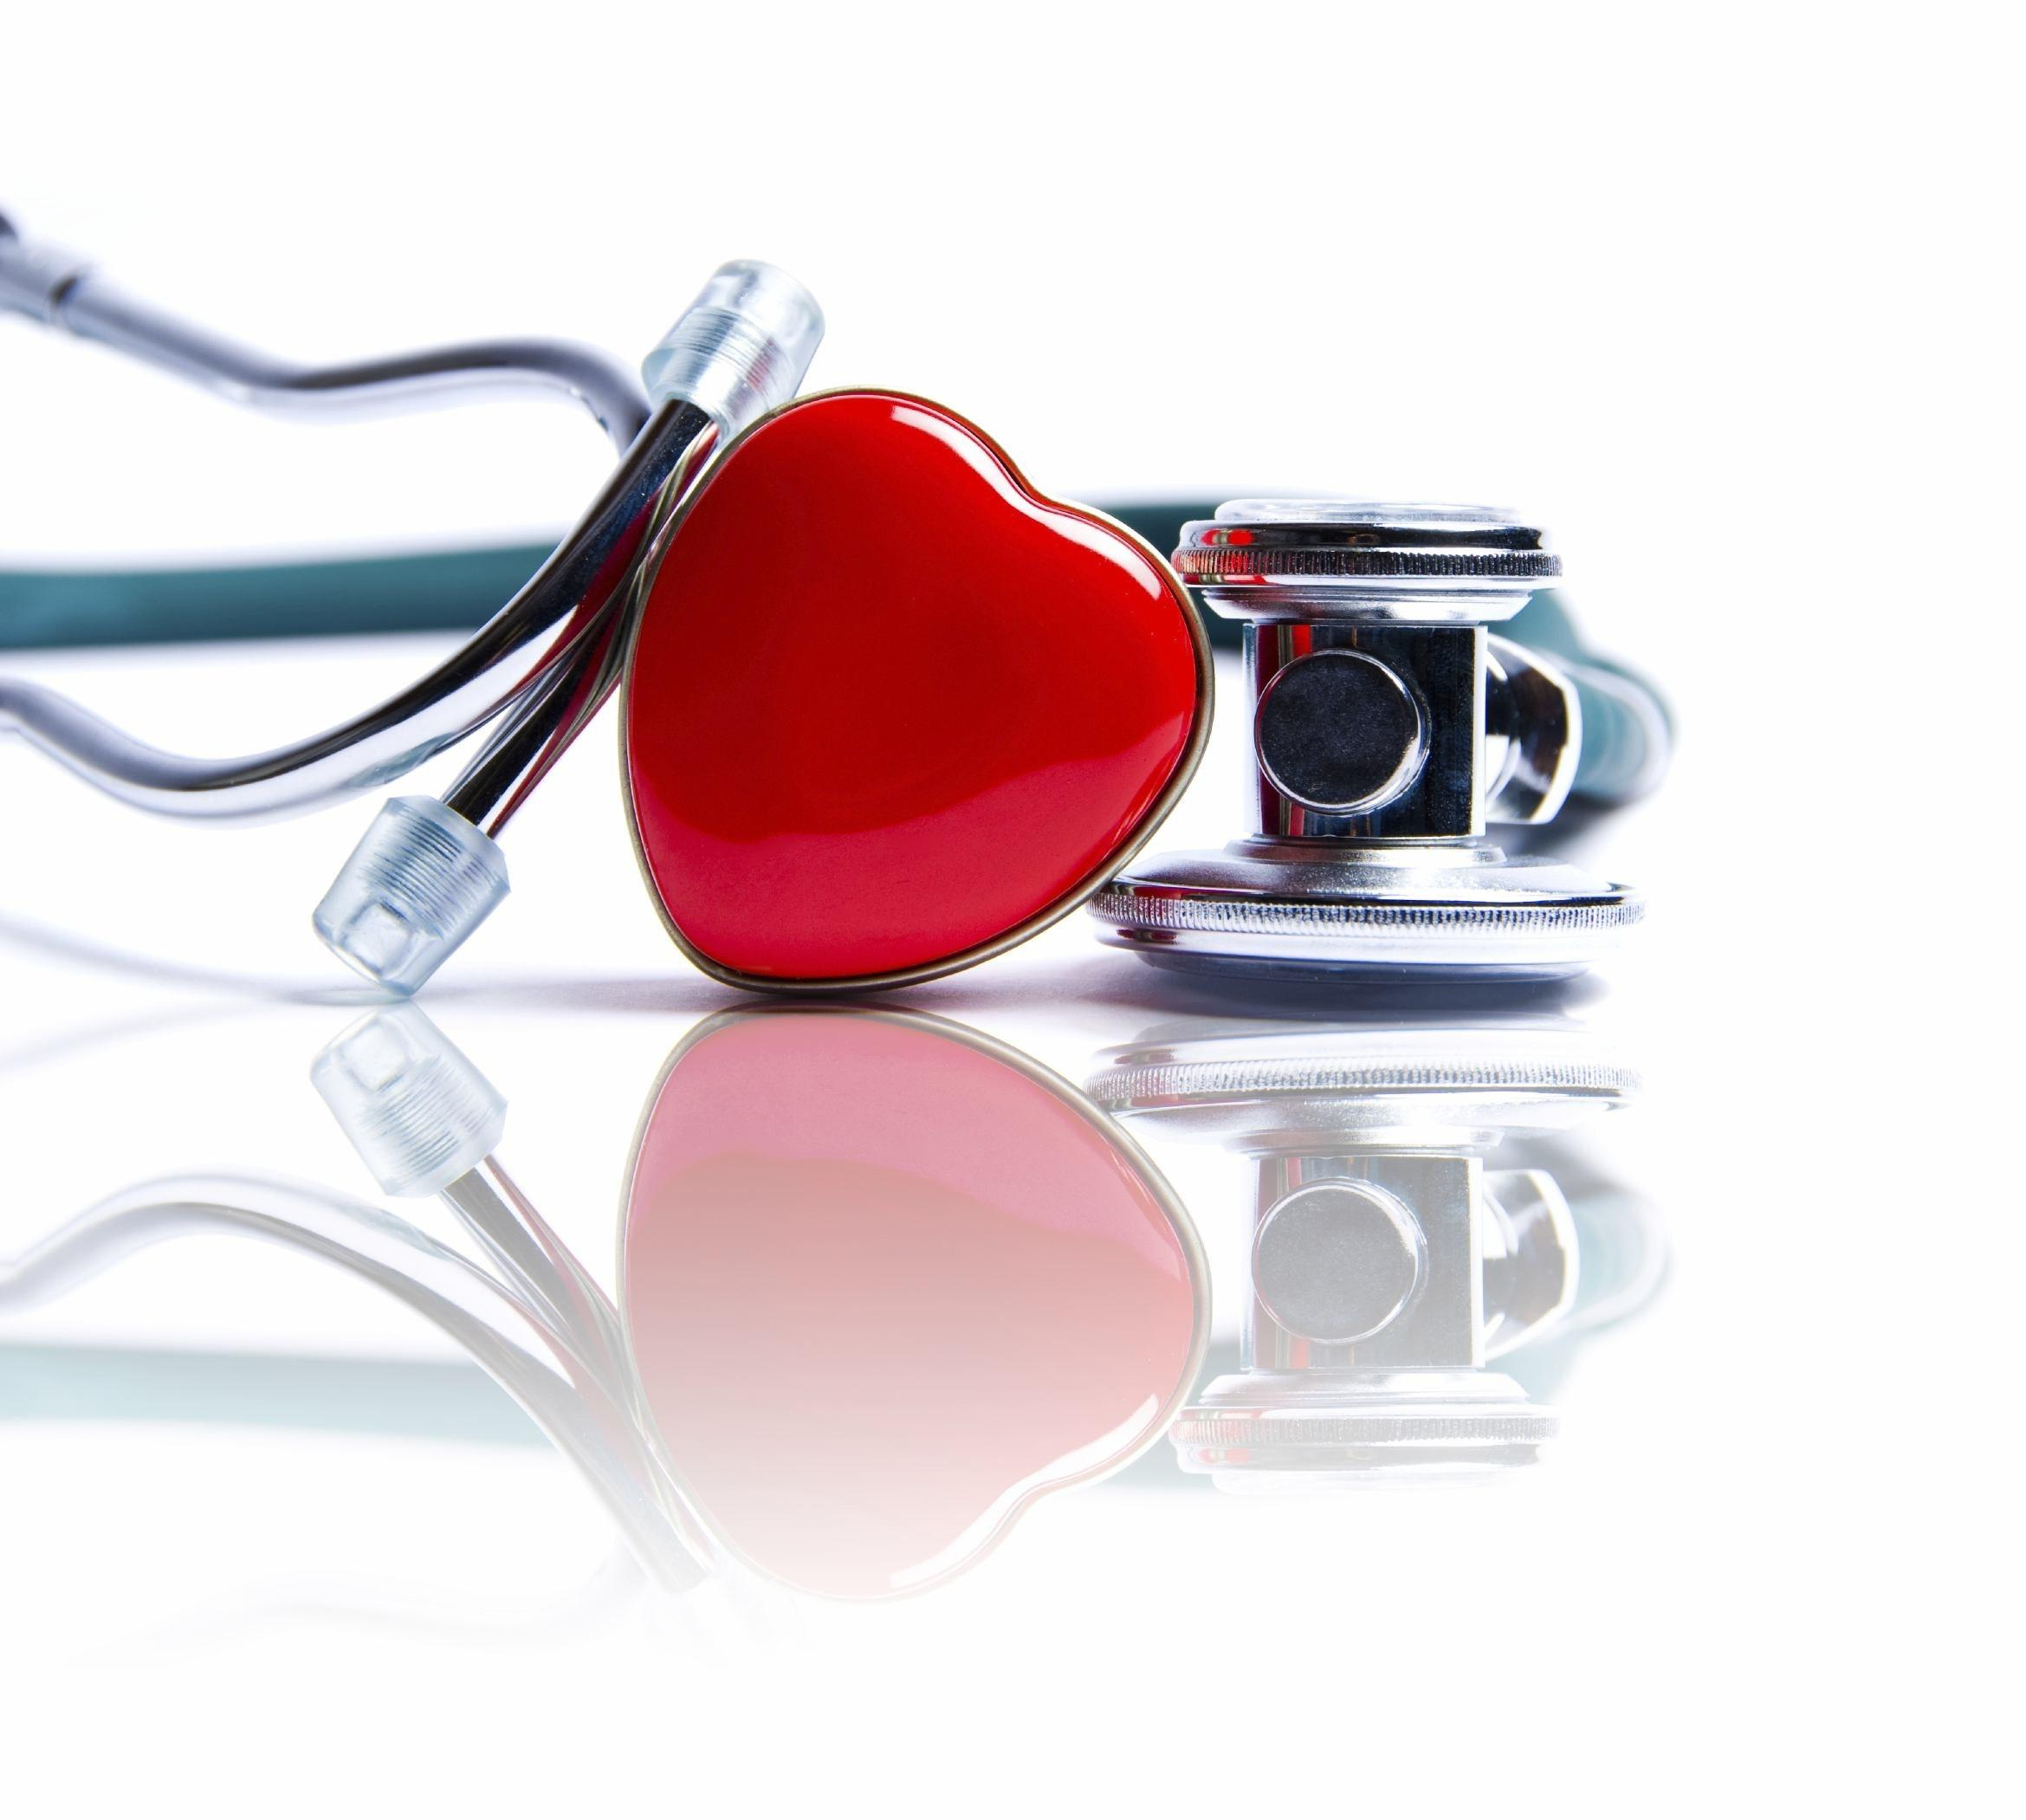 How pharmacies can play a role in the heart health of their patients